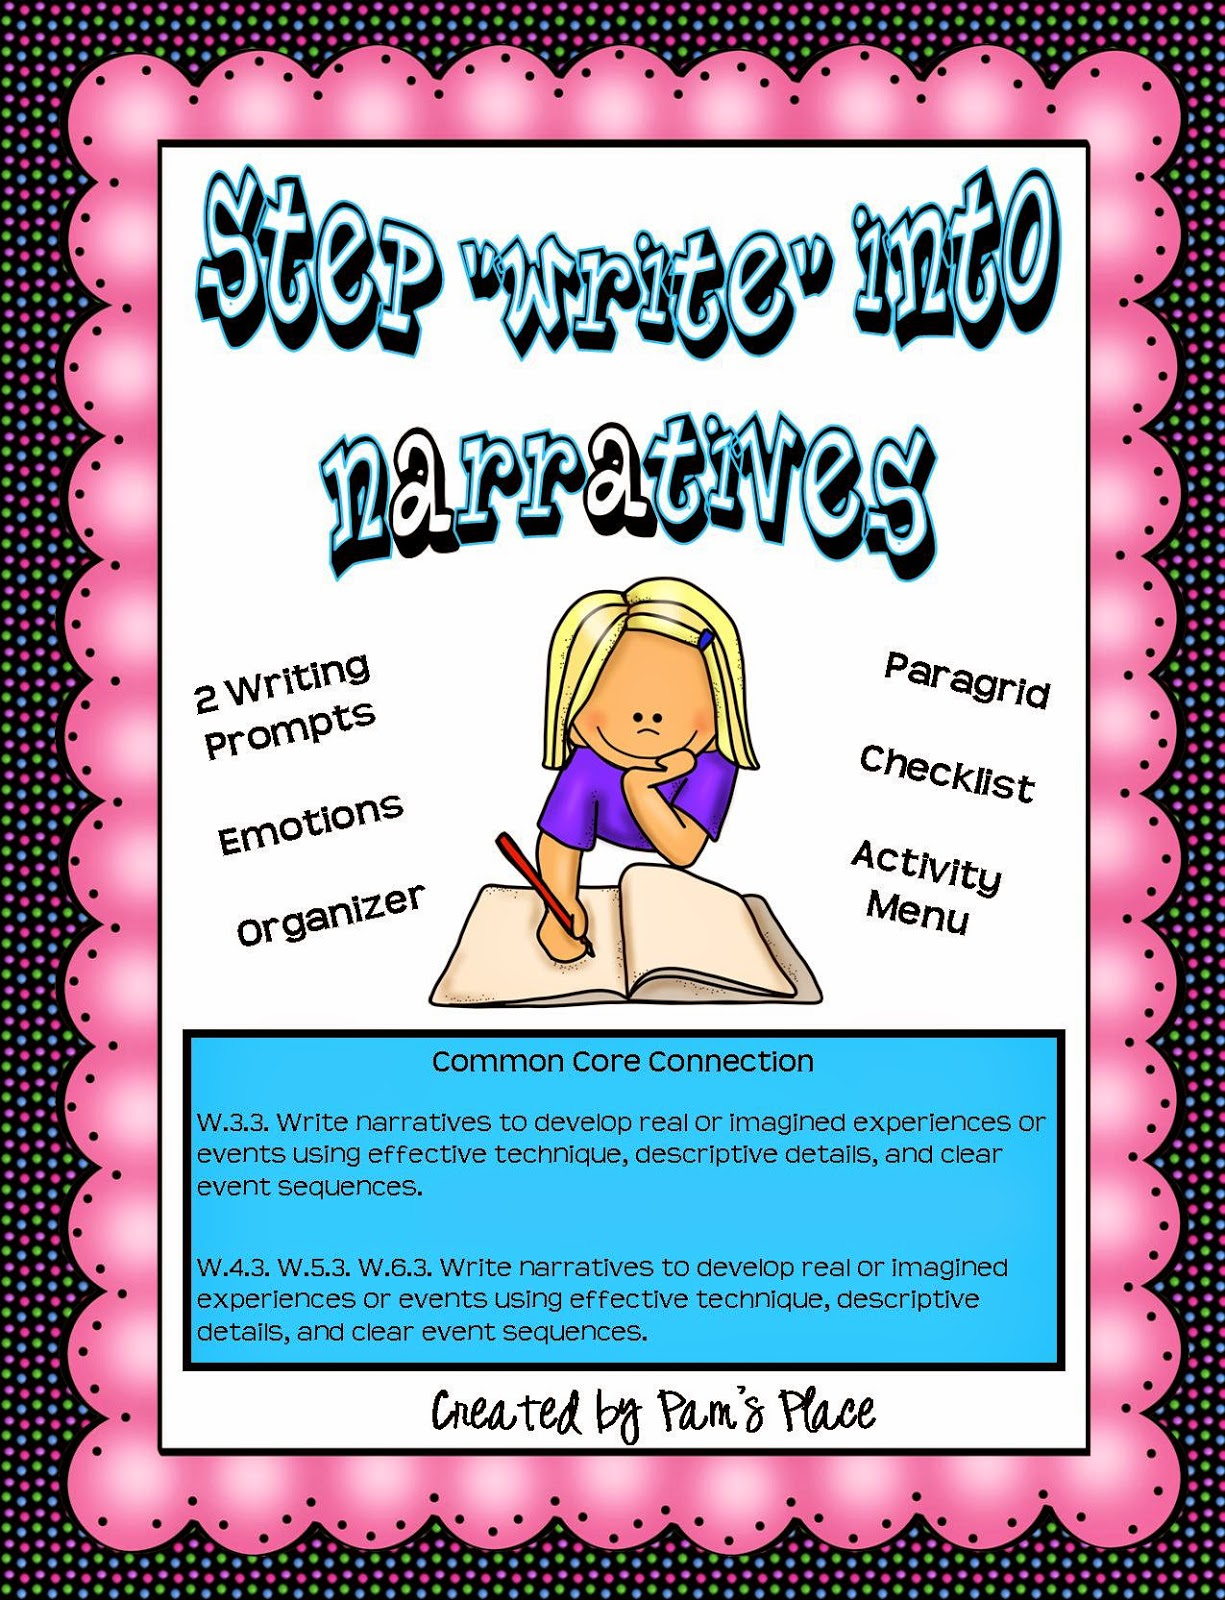 http://www.teacherspayteachers.com/Product/Narrative-Writing-with-Common-Core-Connection-255140